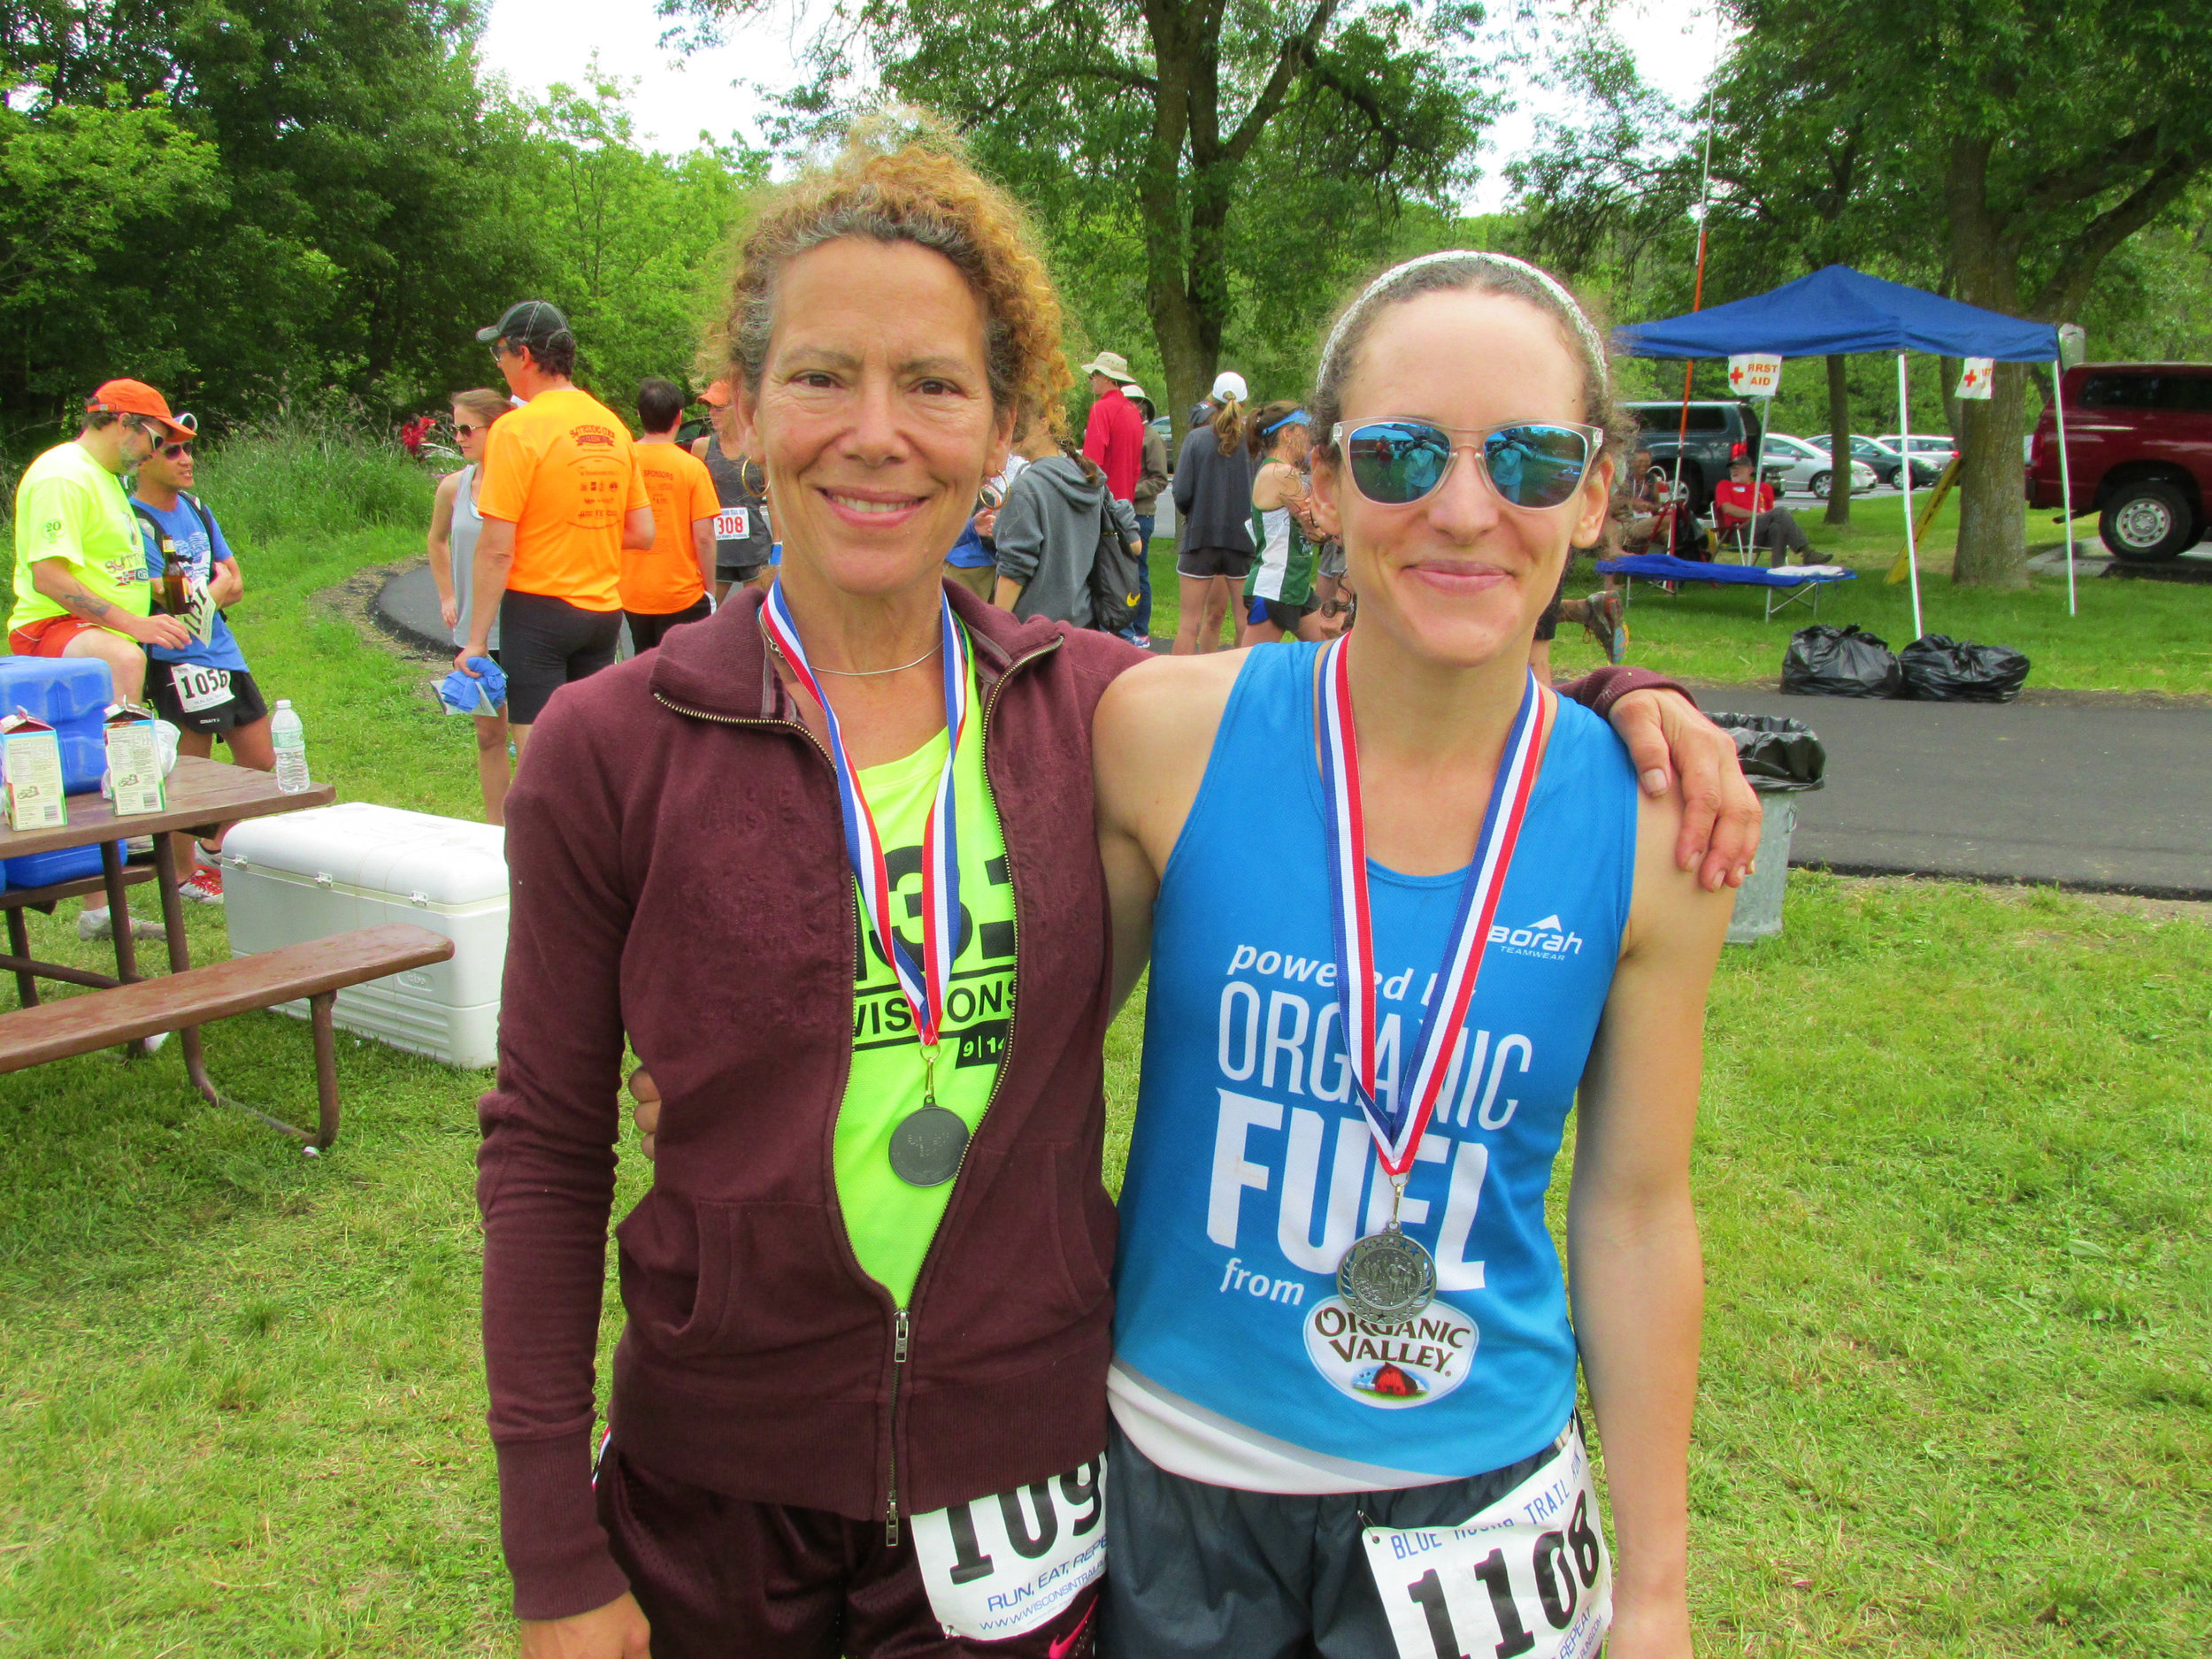 My mom ran the 20k too. She has been an inspiration for my running efforts - she ran a marathon when she was pregnant with me!